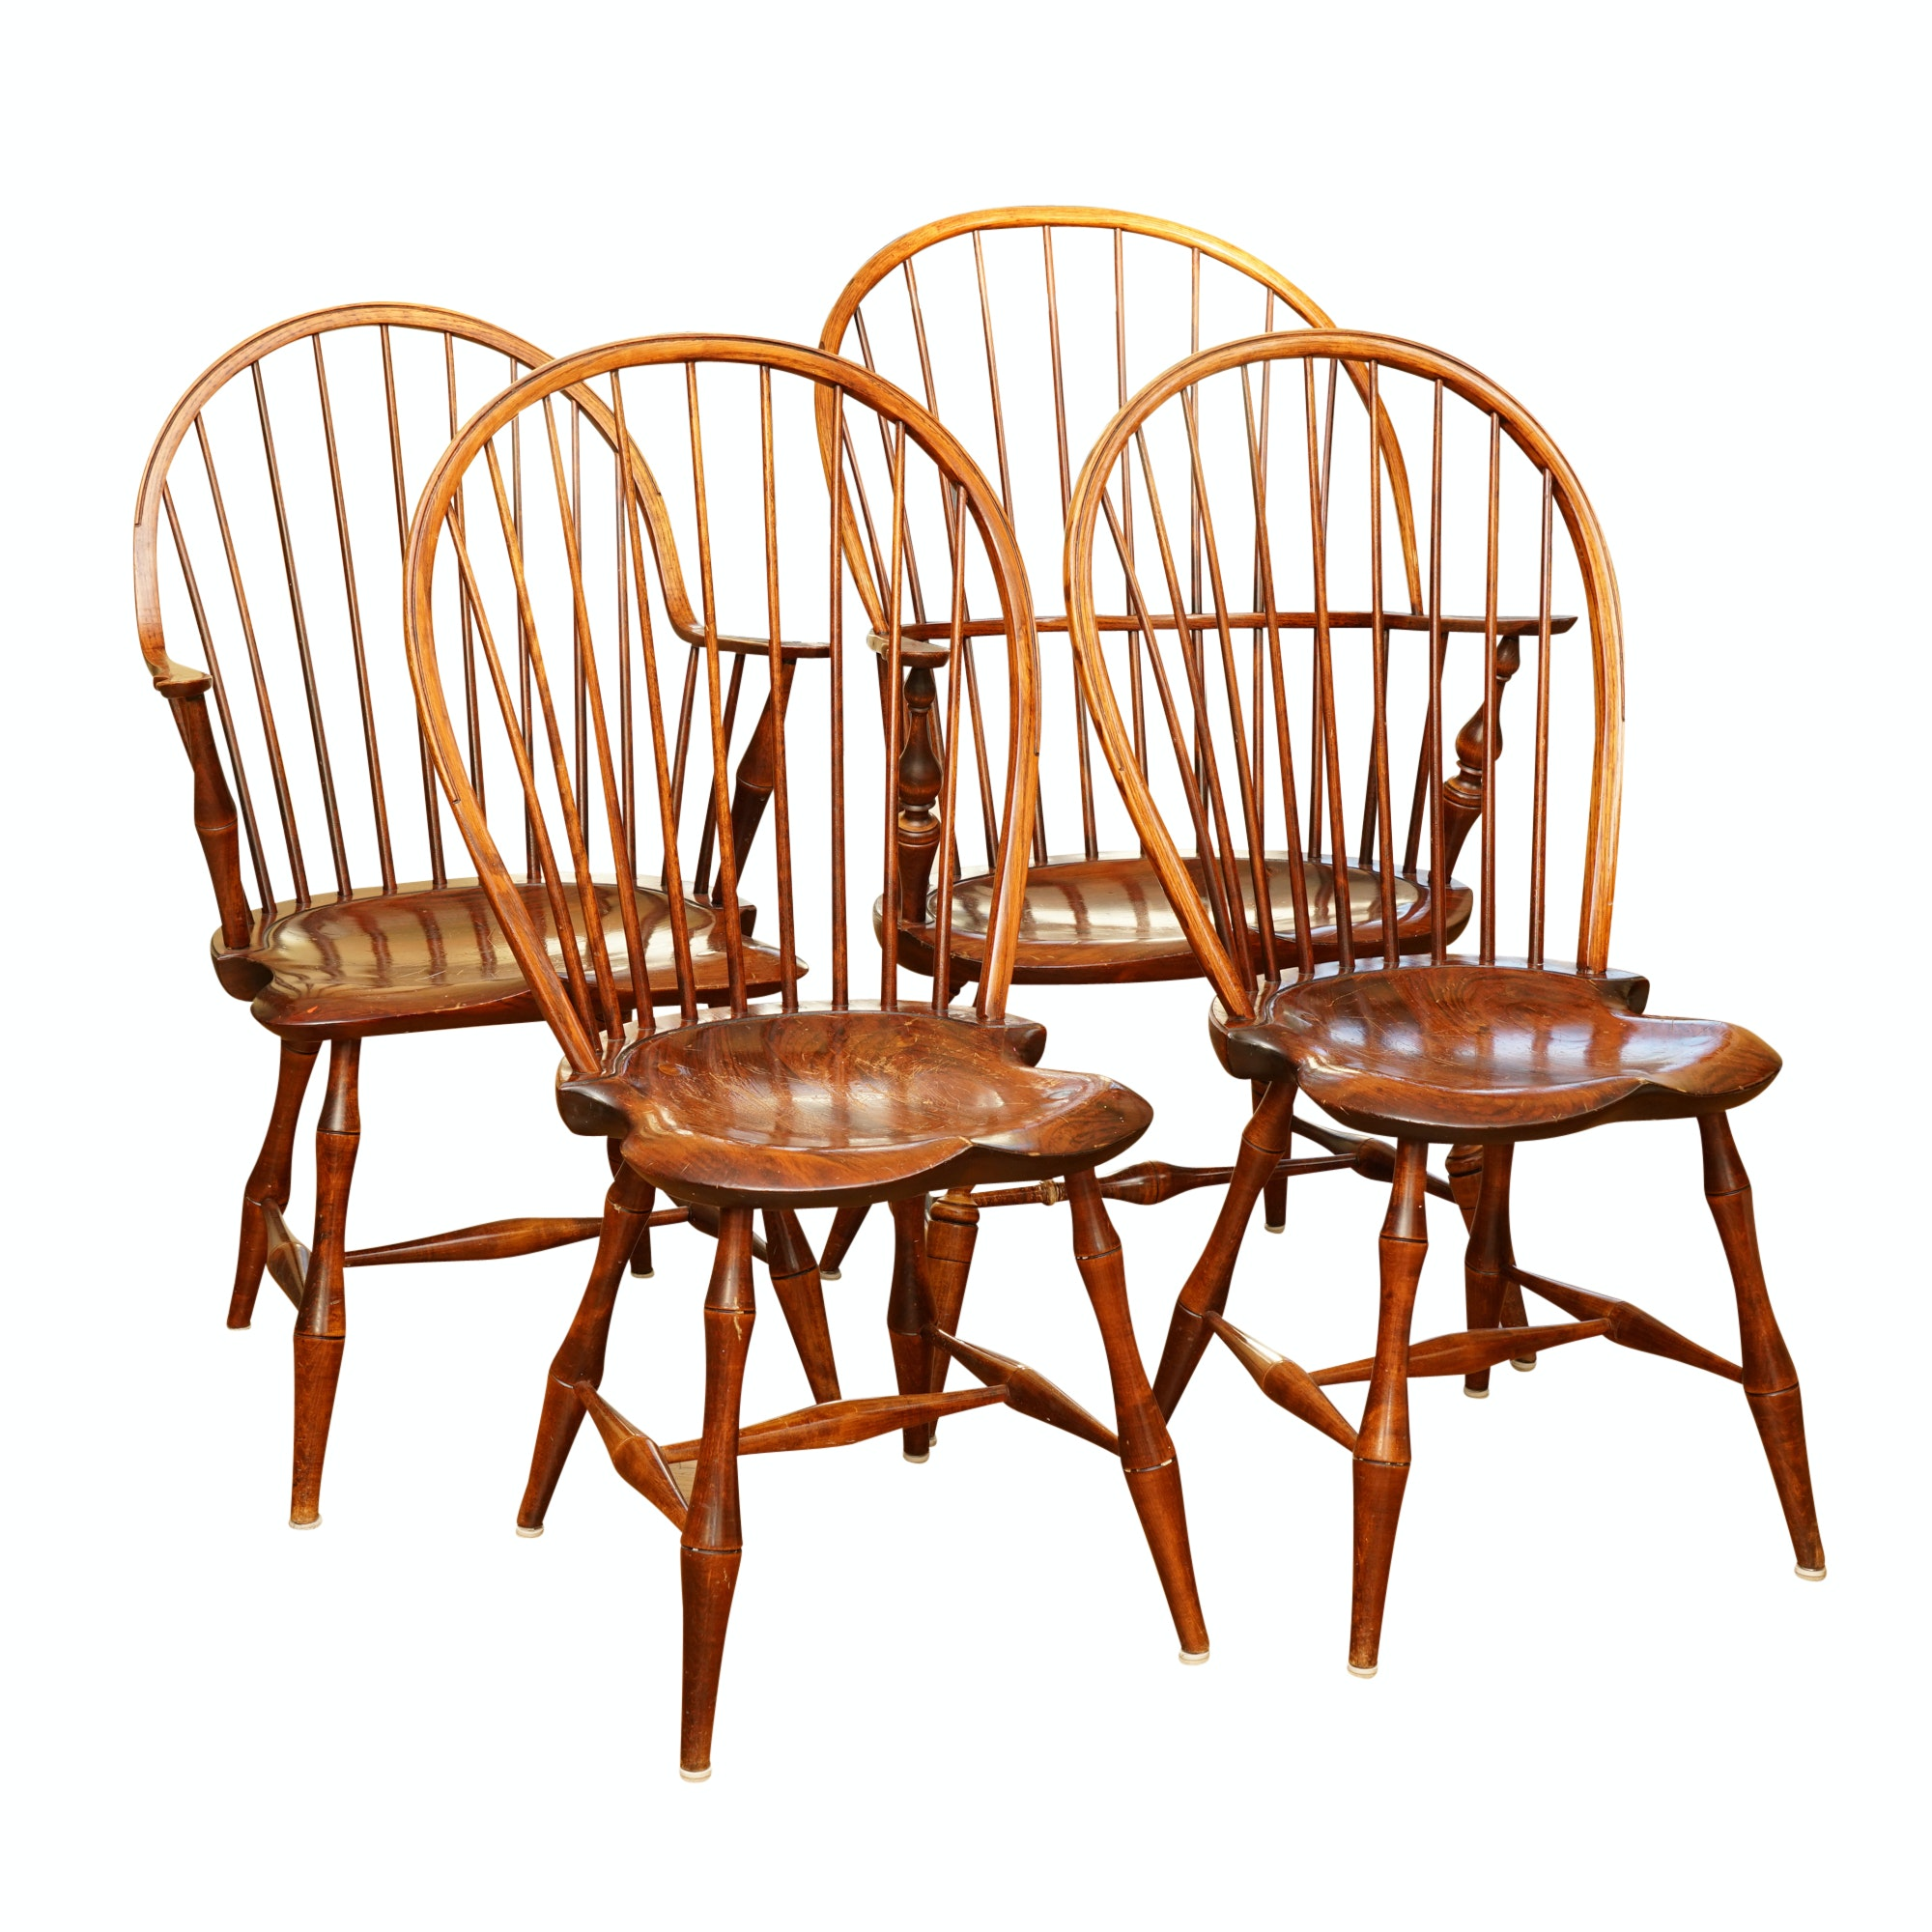 Set of Four Windsor Style Chairs by D.R. Dimes